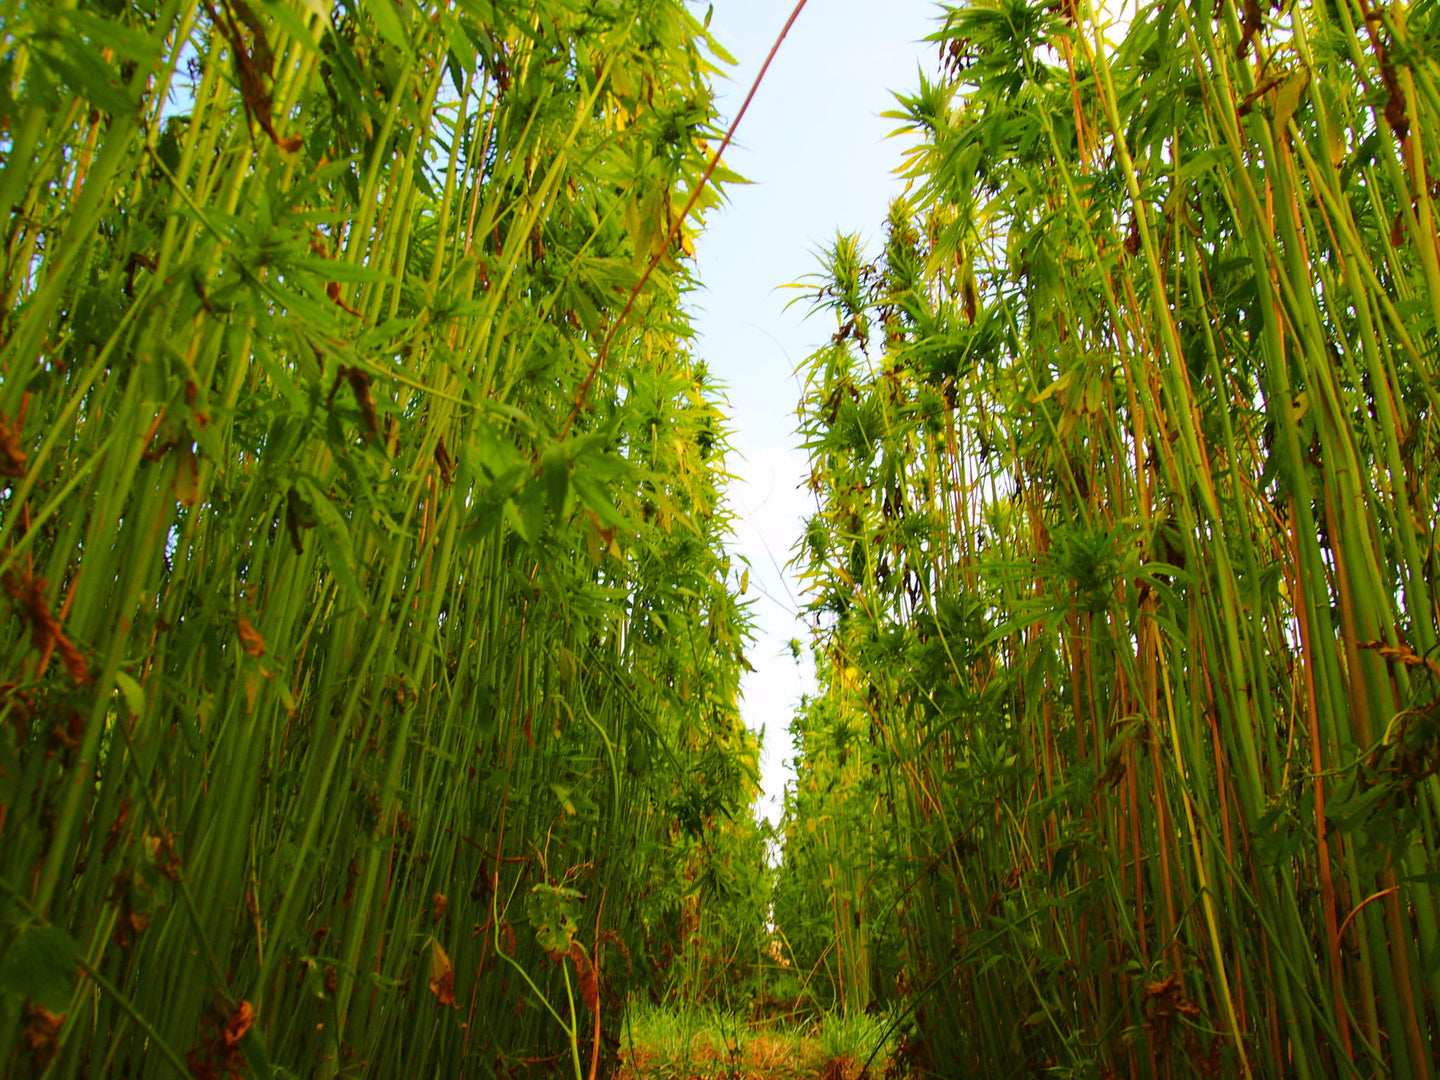 Tall hemp field